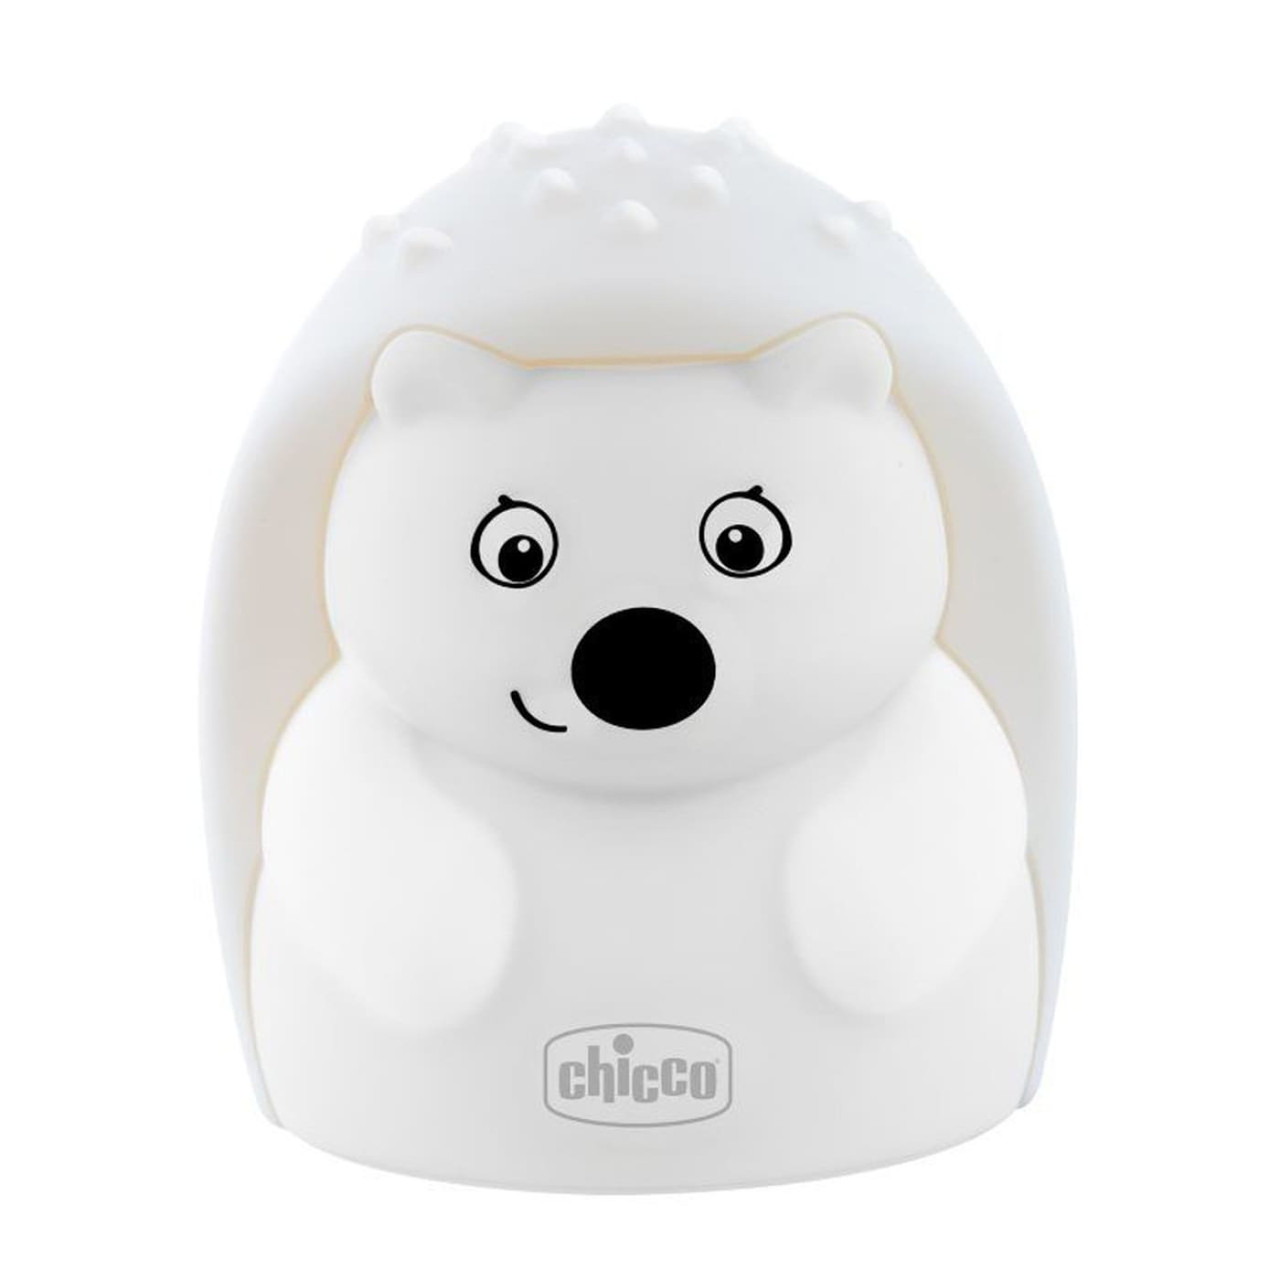 Chicco Sweet Lights Rechargeable Lamp at Baby Barn Discounts